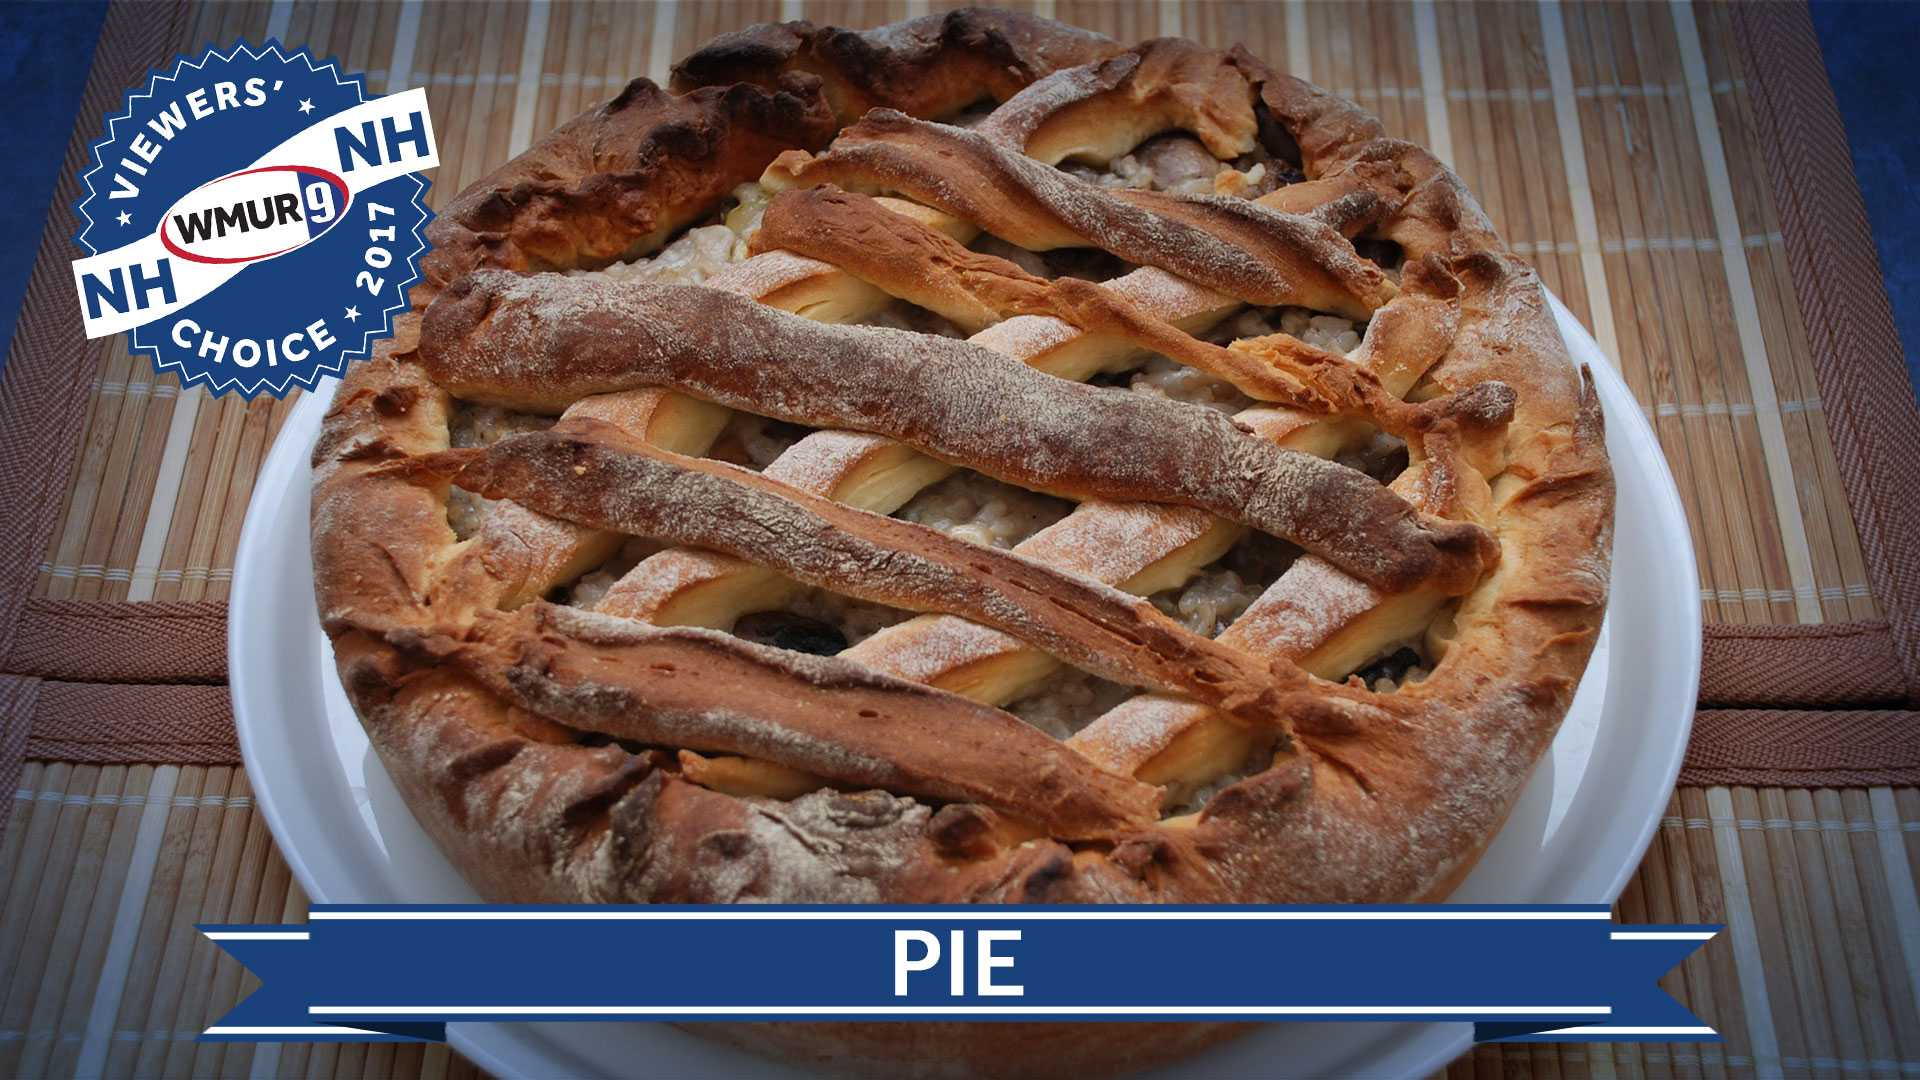 Viewers' Choice pie